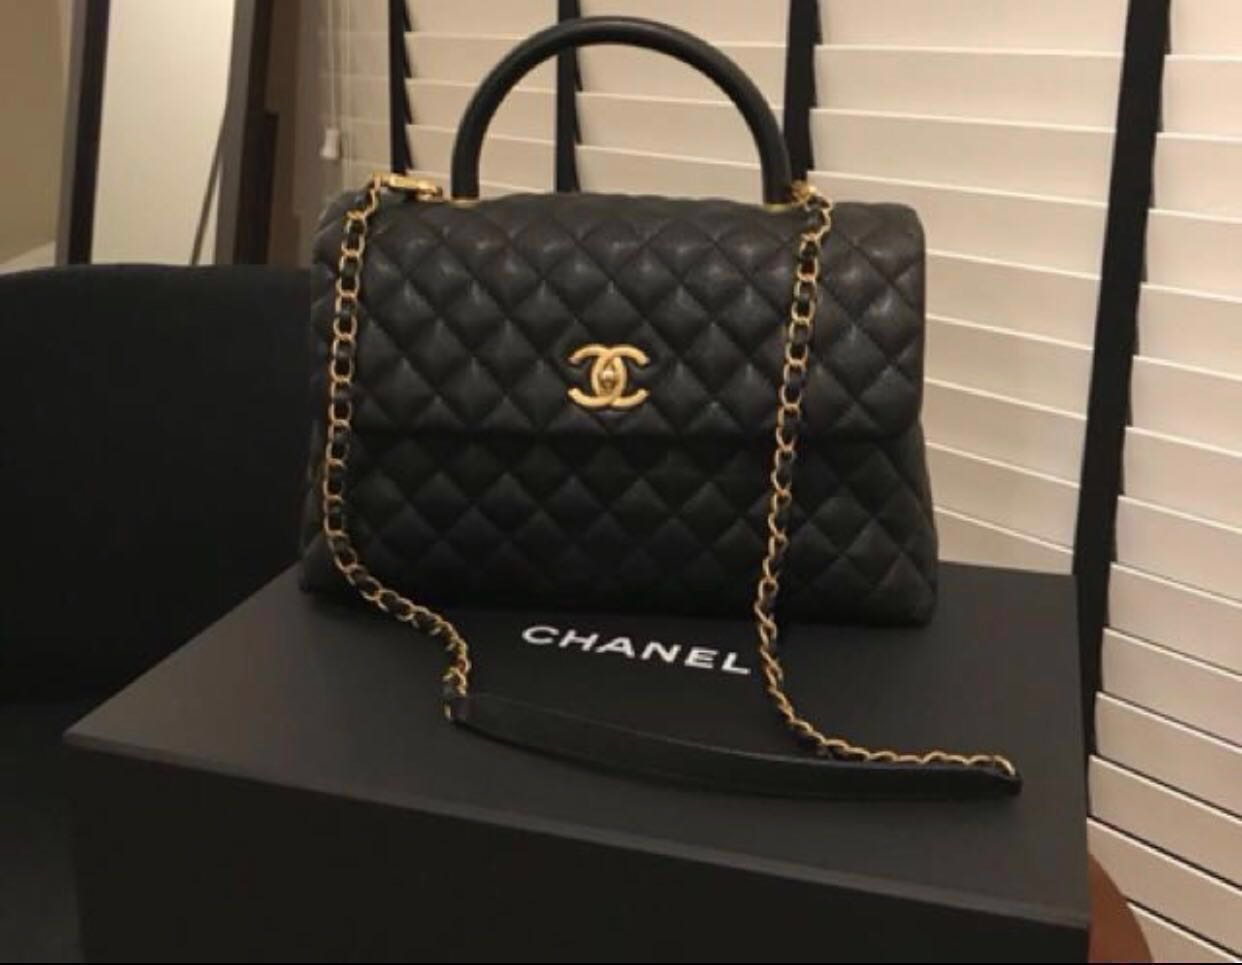 1dedc36d59fdce Authentic Chanel Coco Handle Large, Luxury, Bags & Wallets, Handbags ...